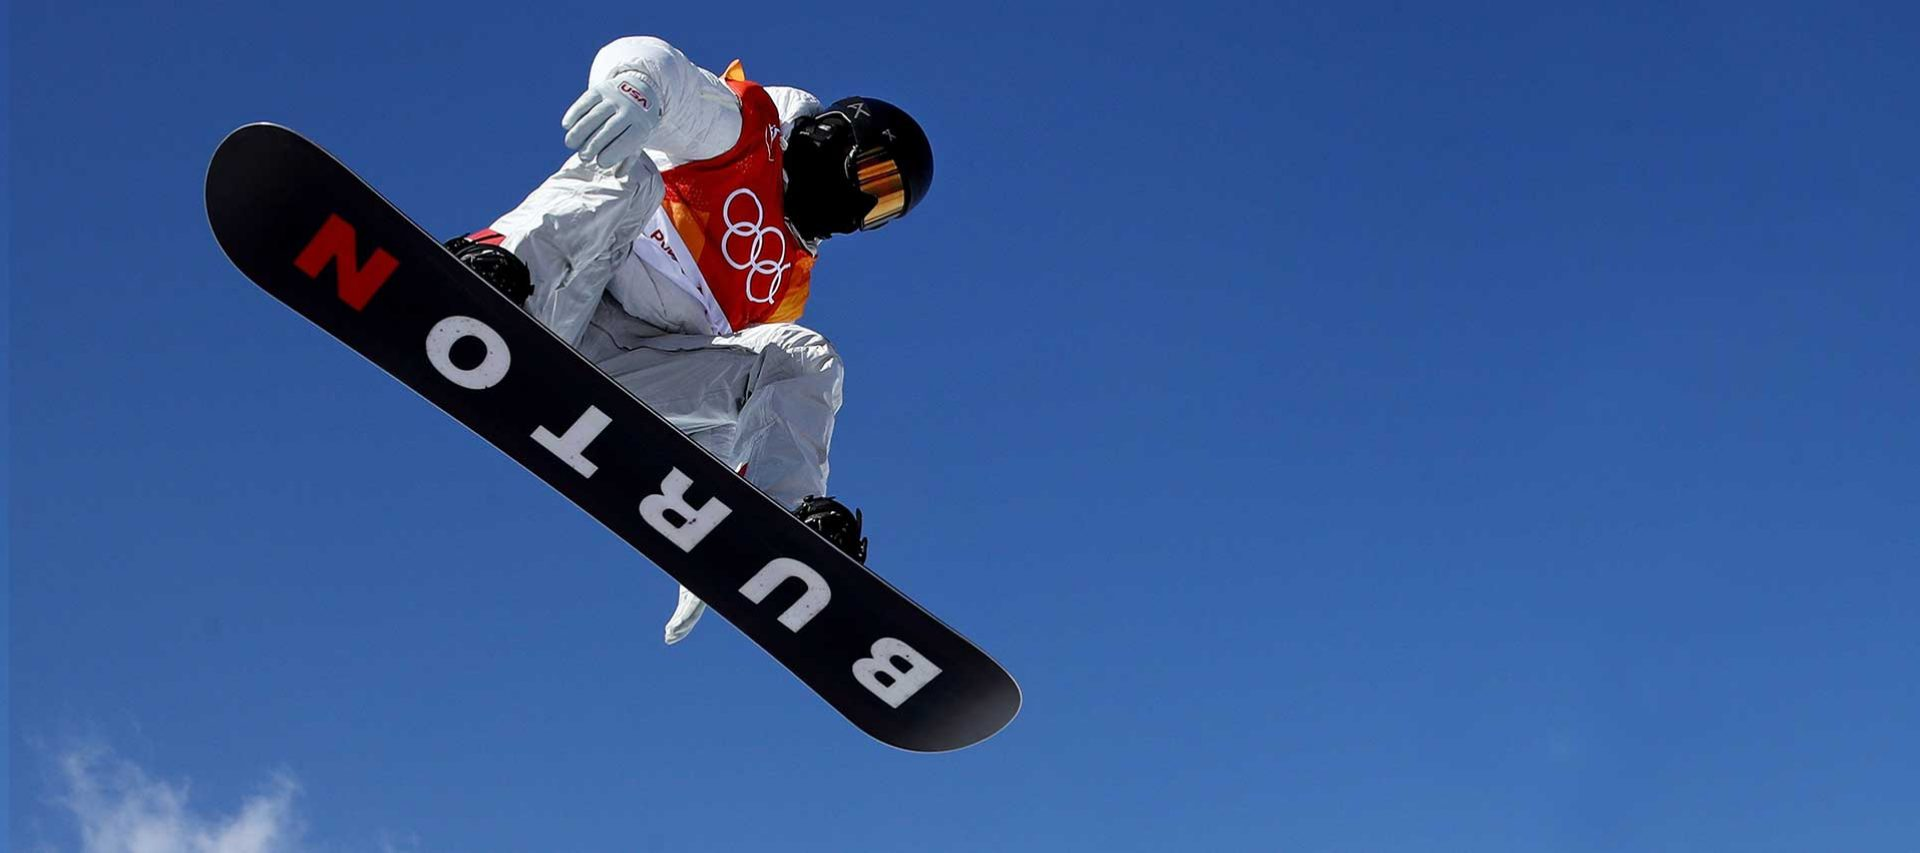 Paul Reader Snow Sports Burton 2019 shaun-white-olympics